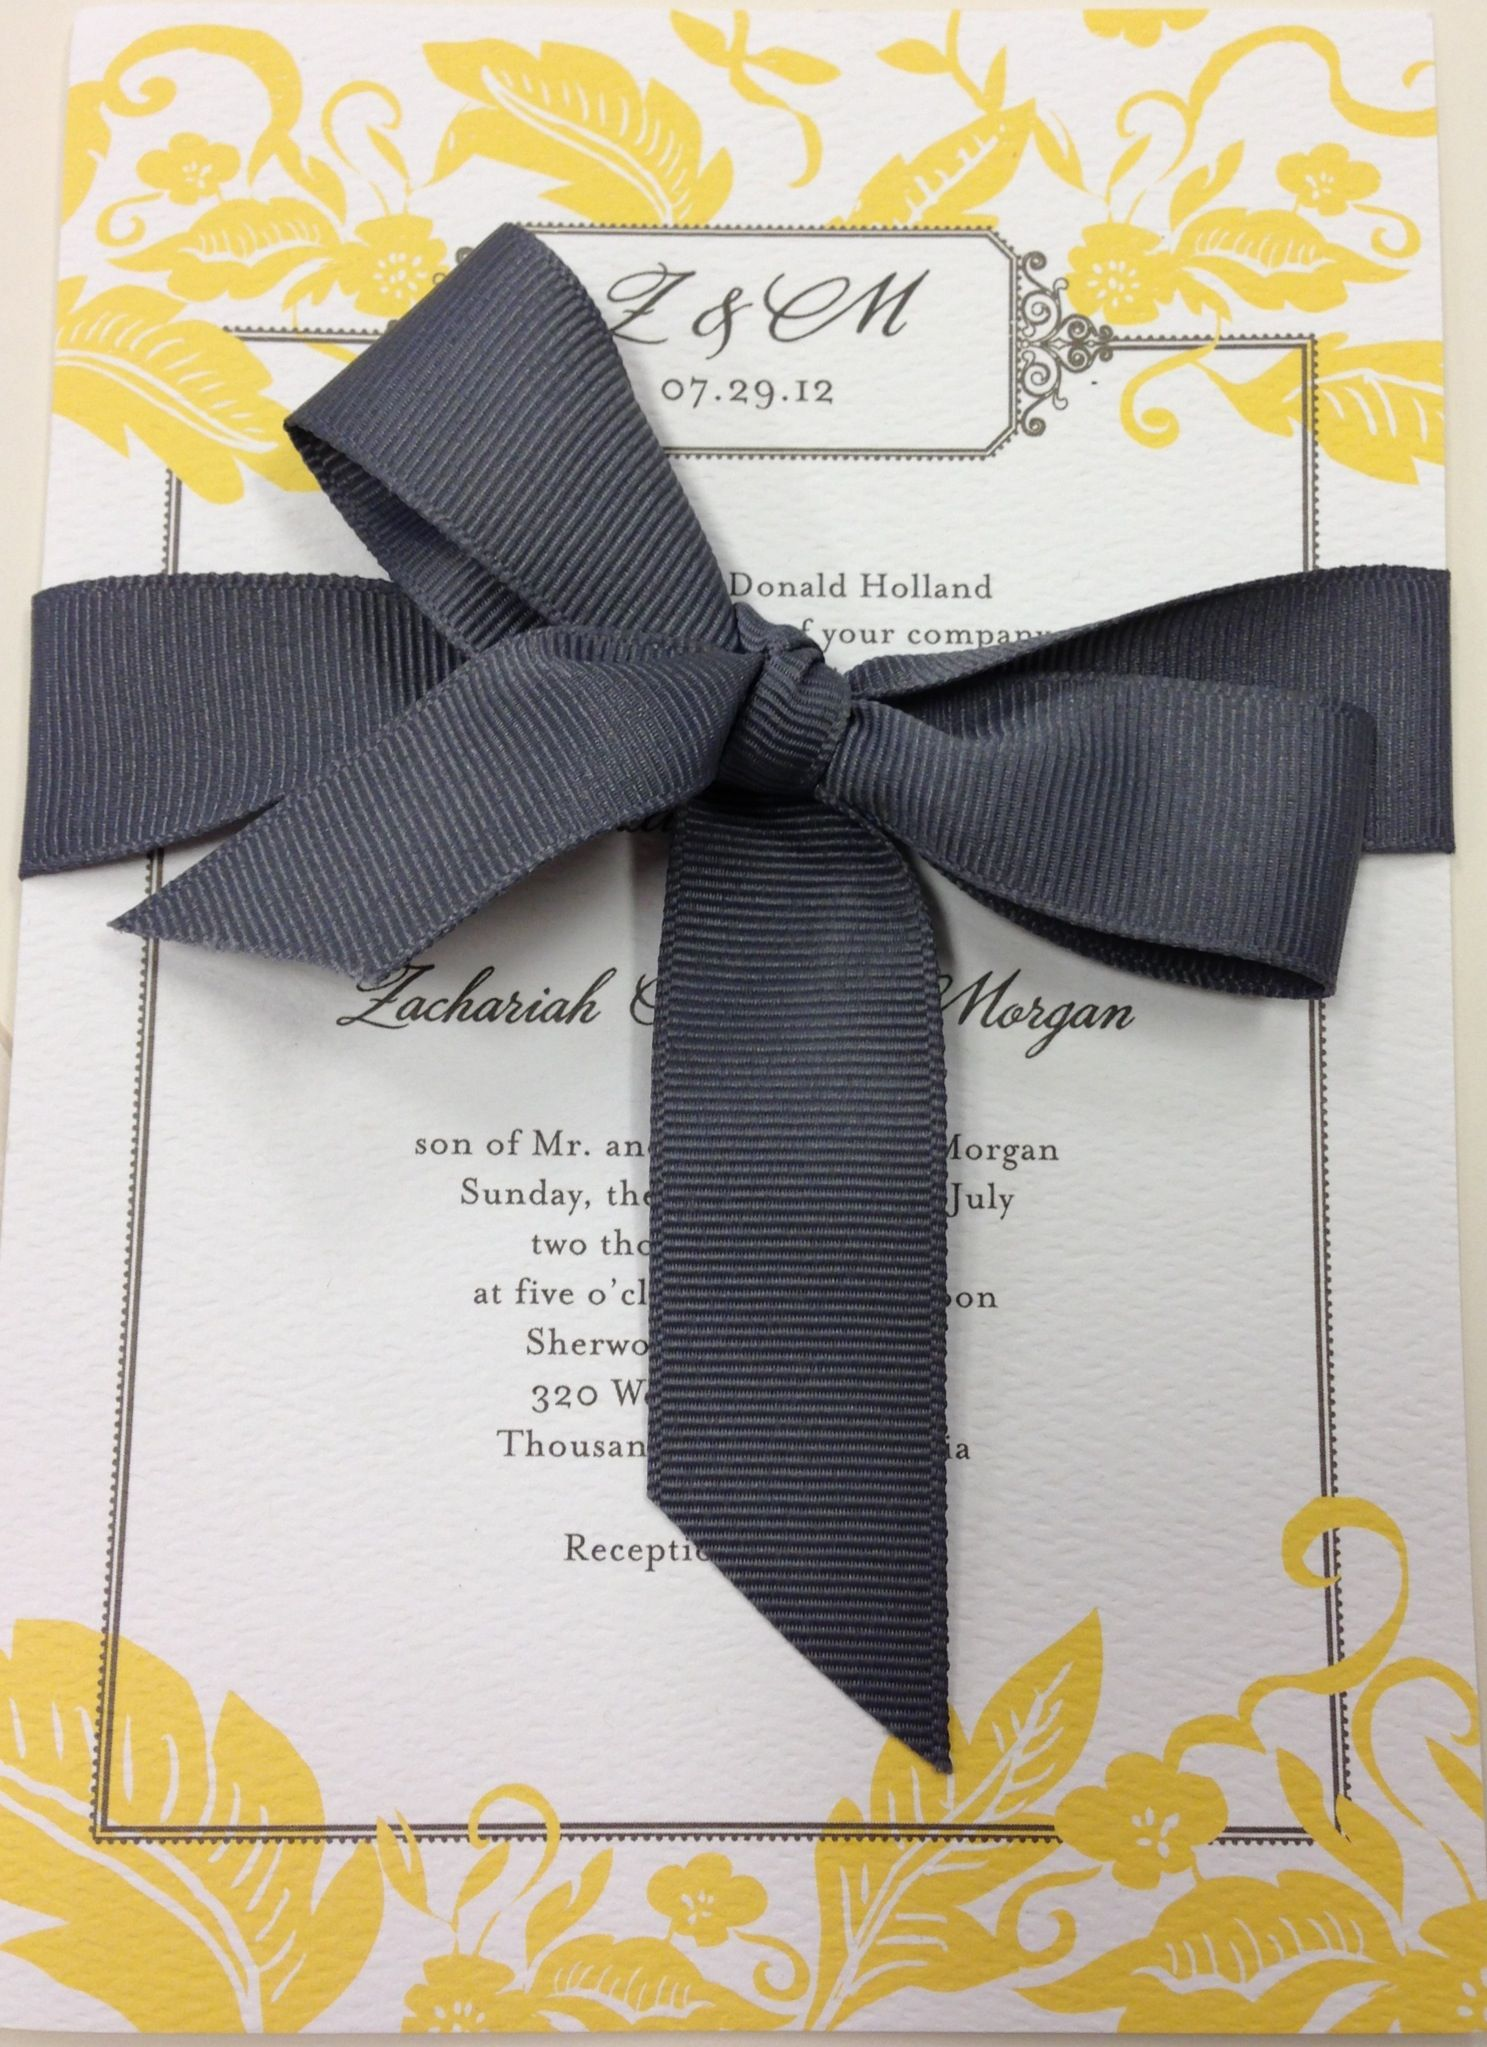 tie ribbon wedding invitation%0A Grey and yellow wedding